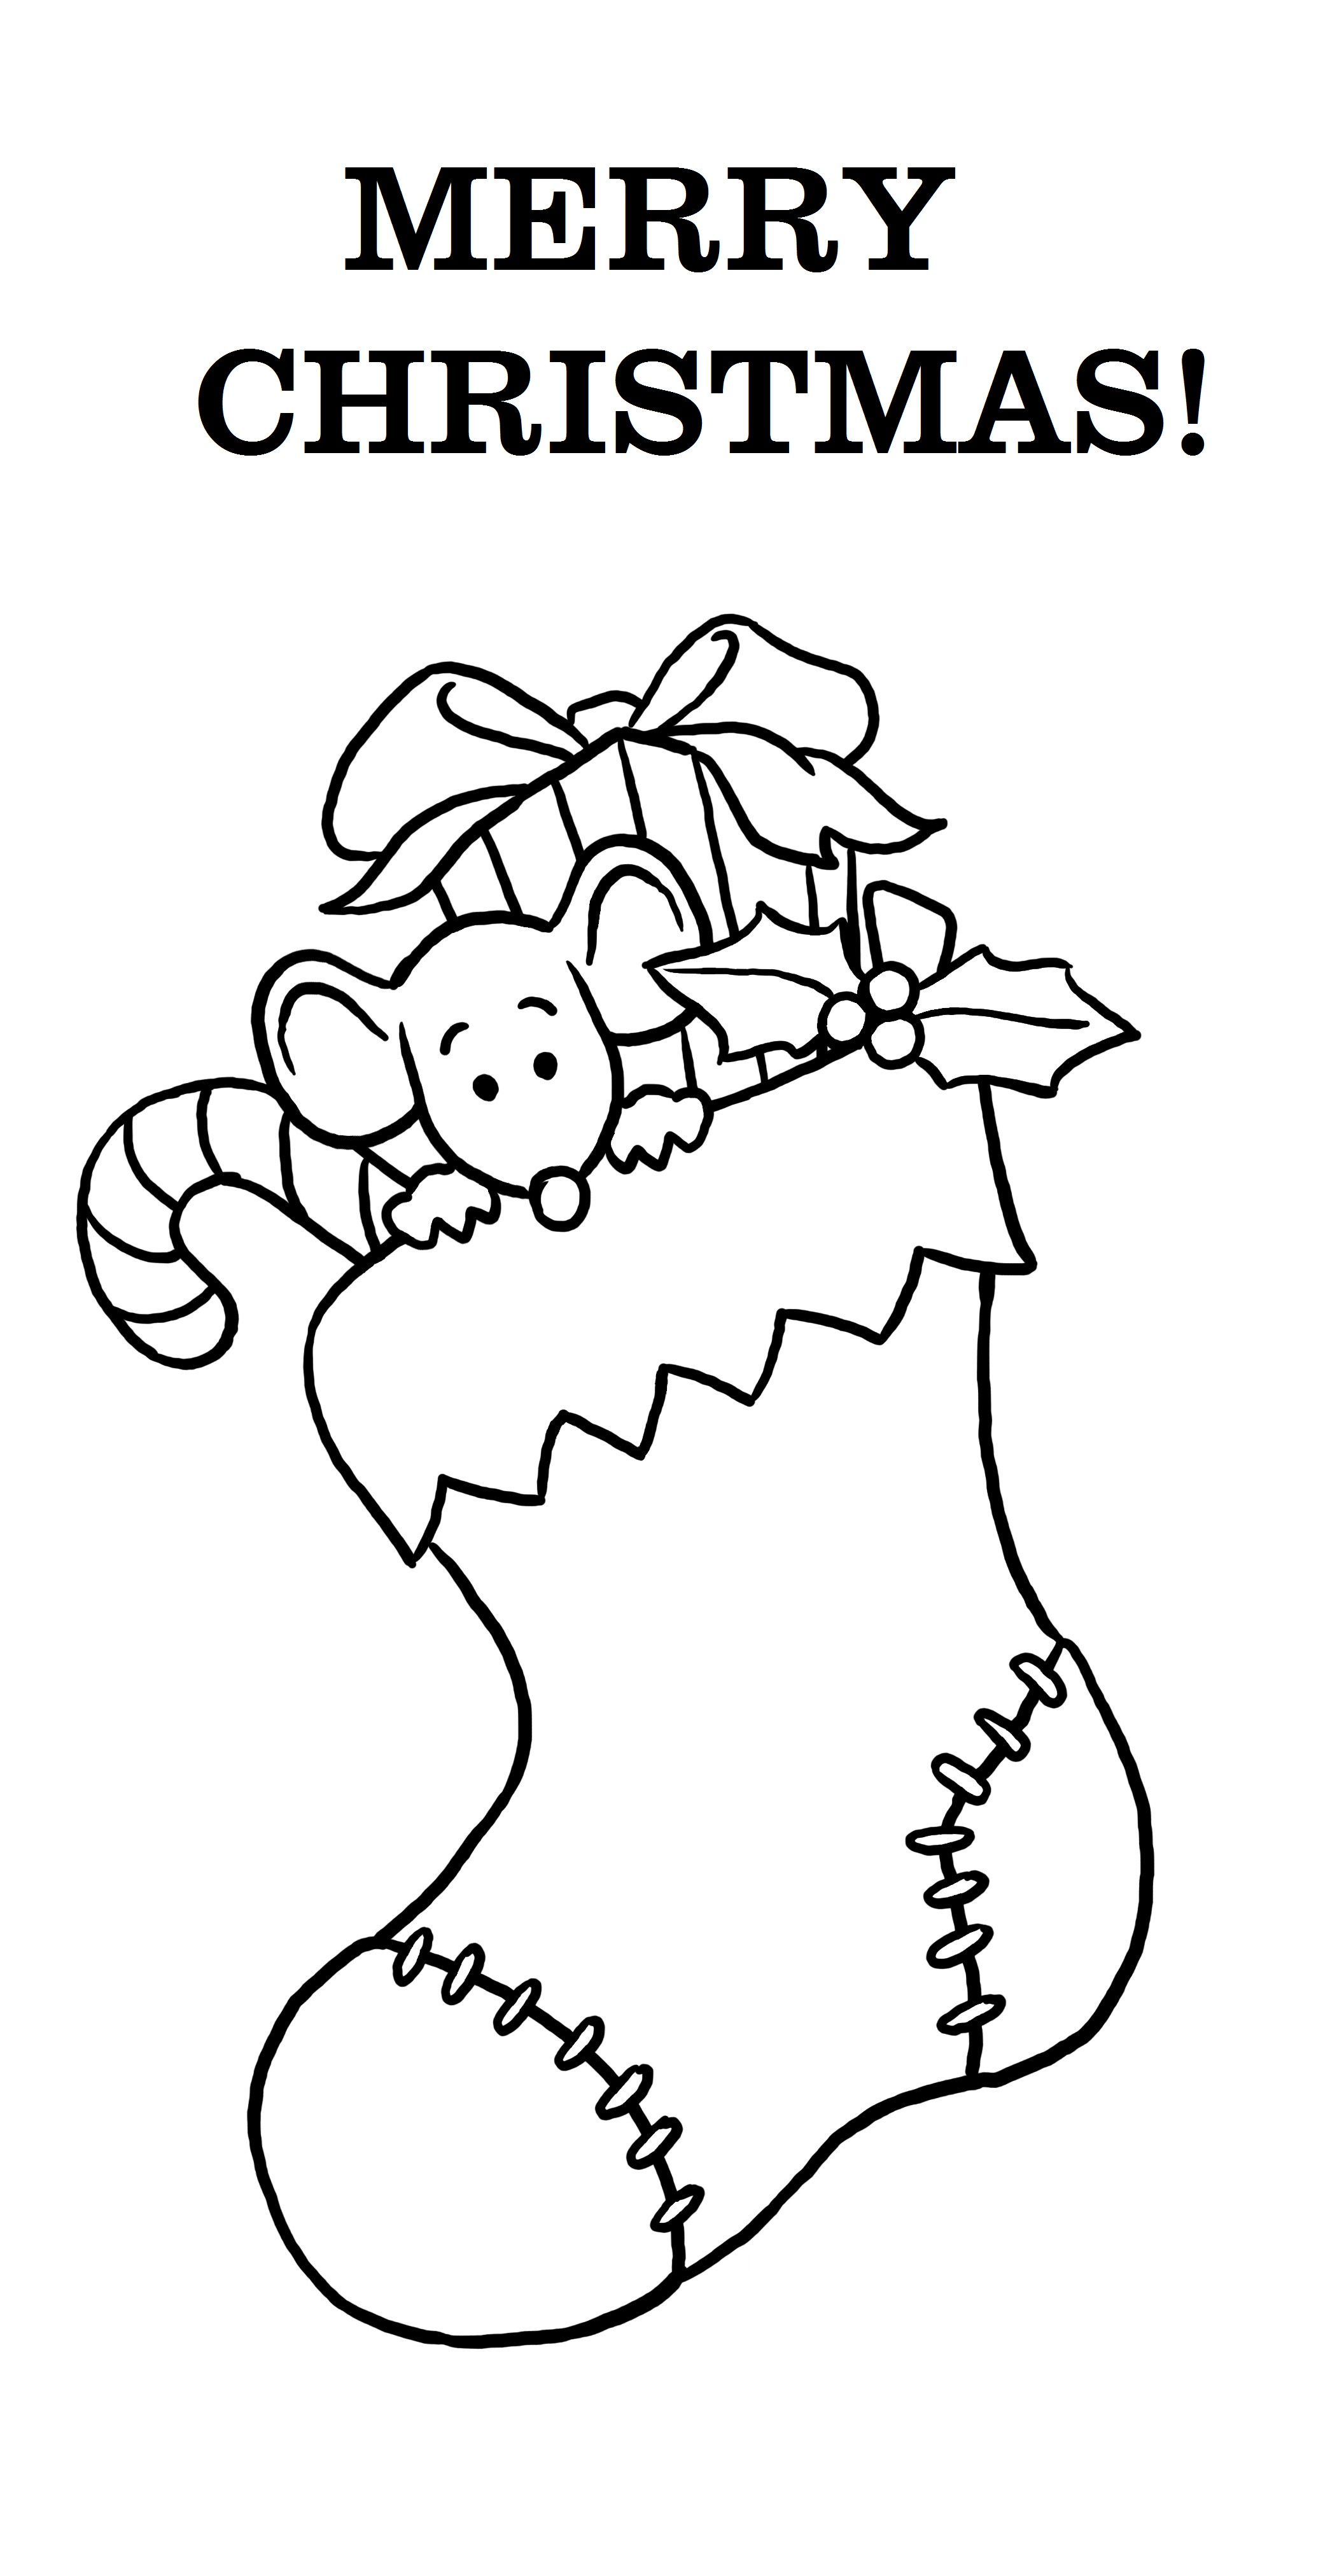 Merry Christmas Coloring Pages Pdf With Free Printable